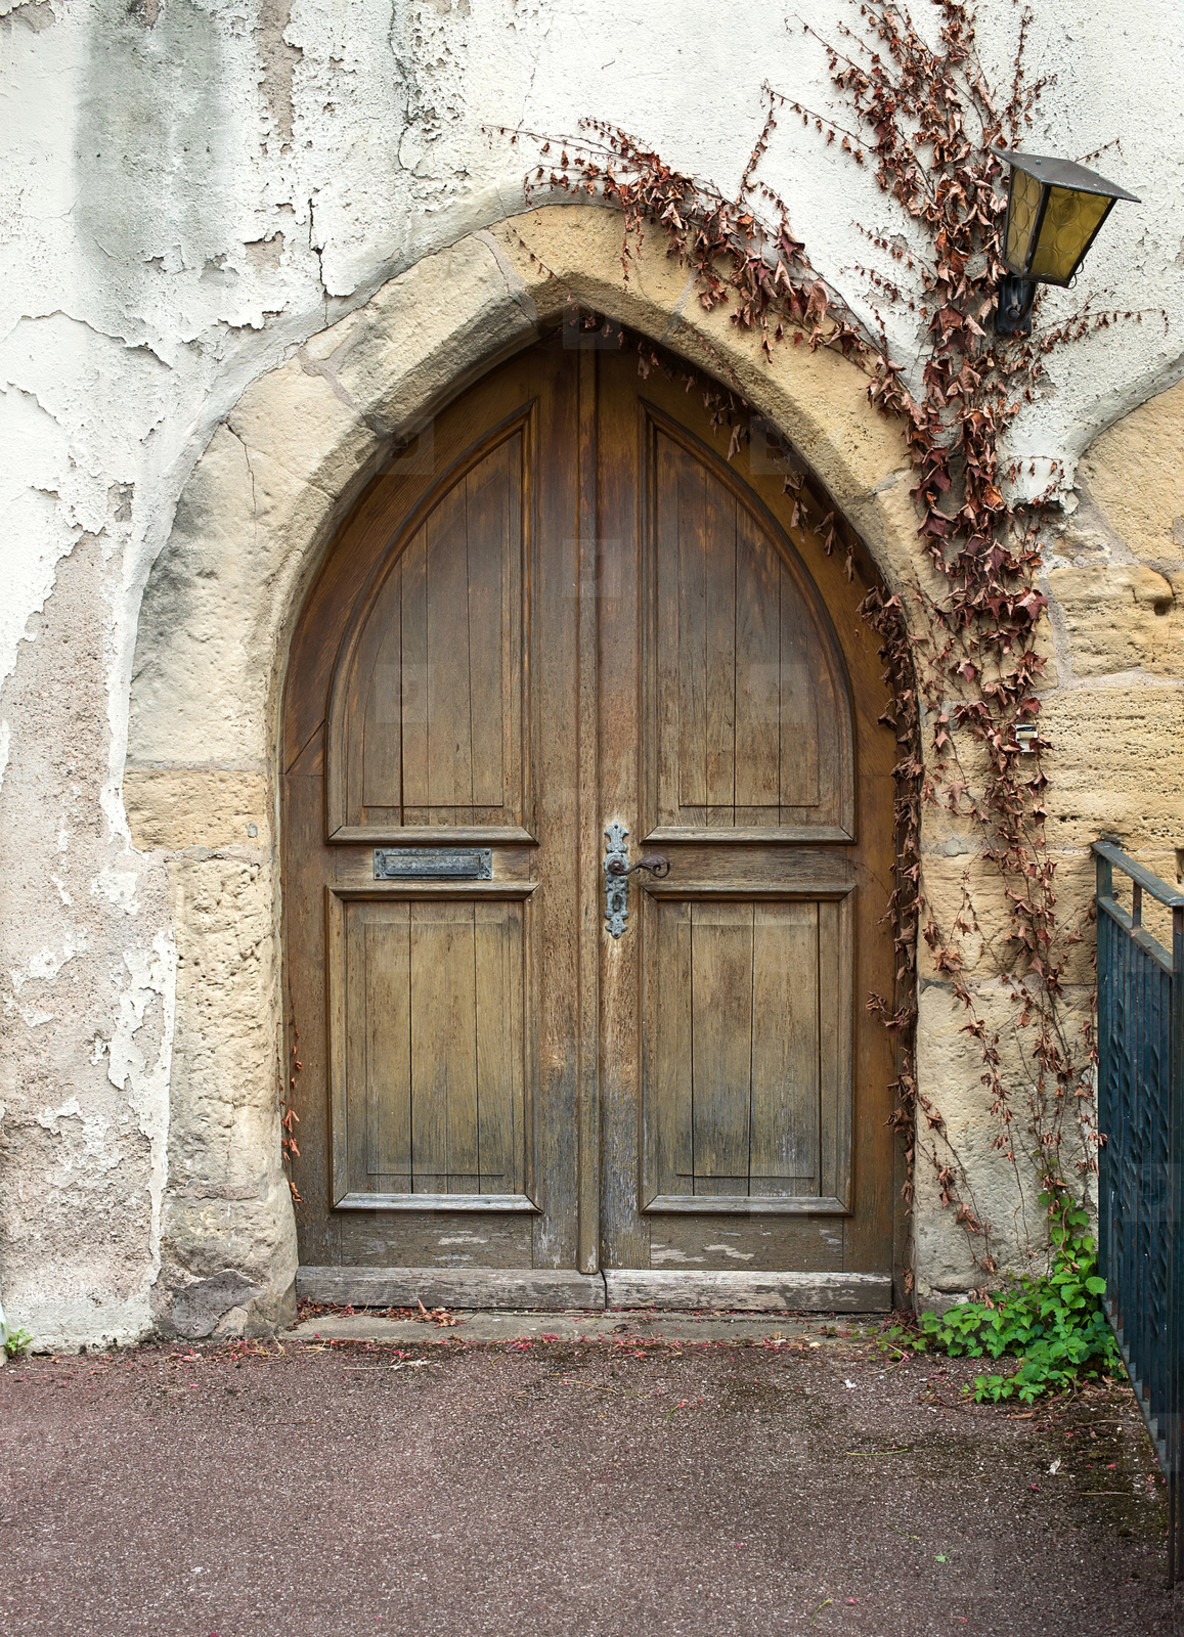 Old wooden door from medieval era found in Alsace region of France